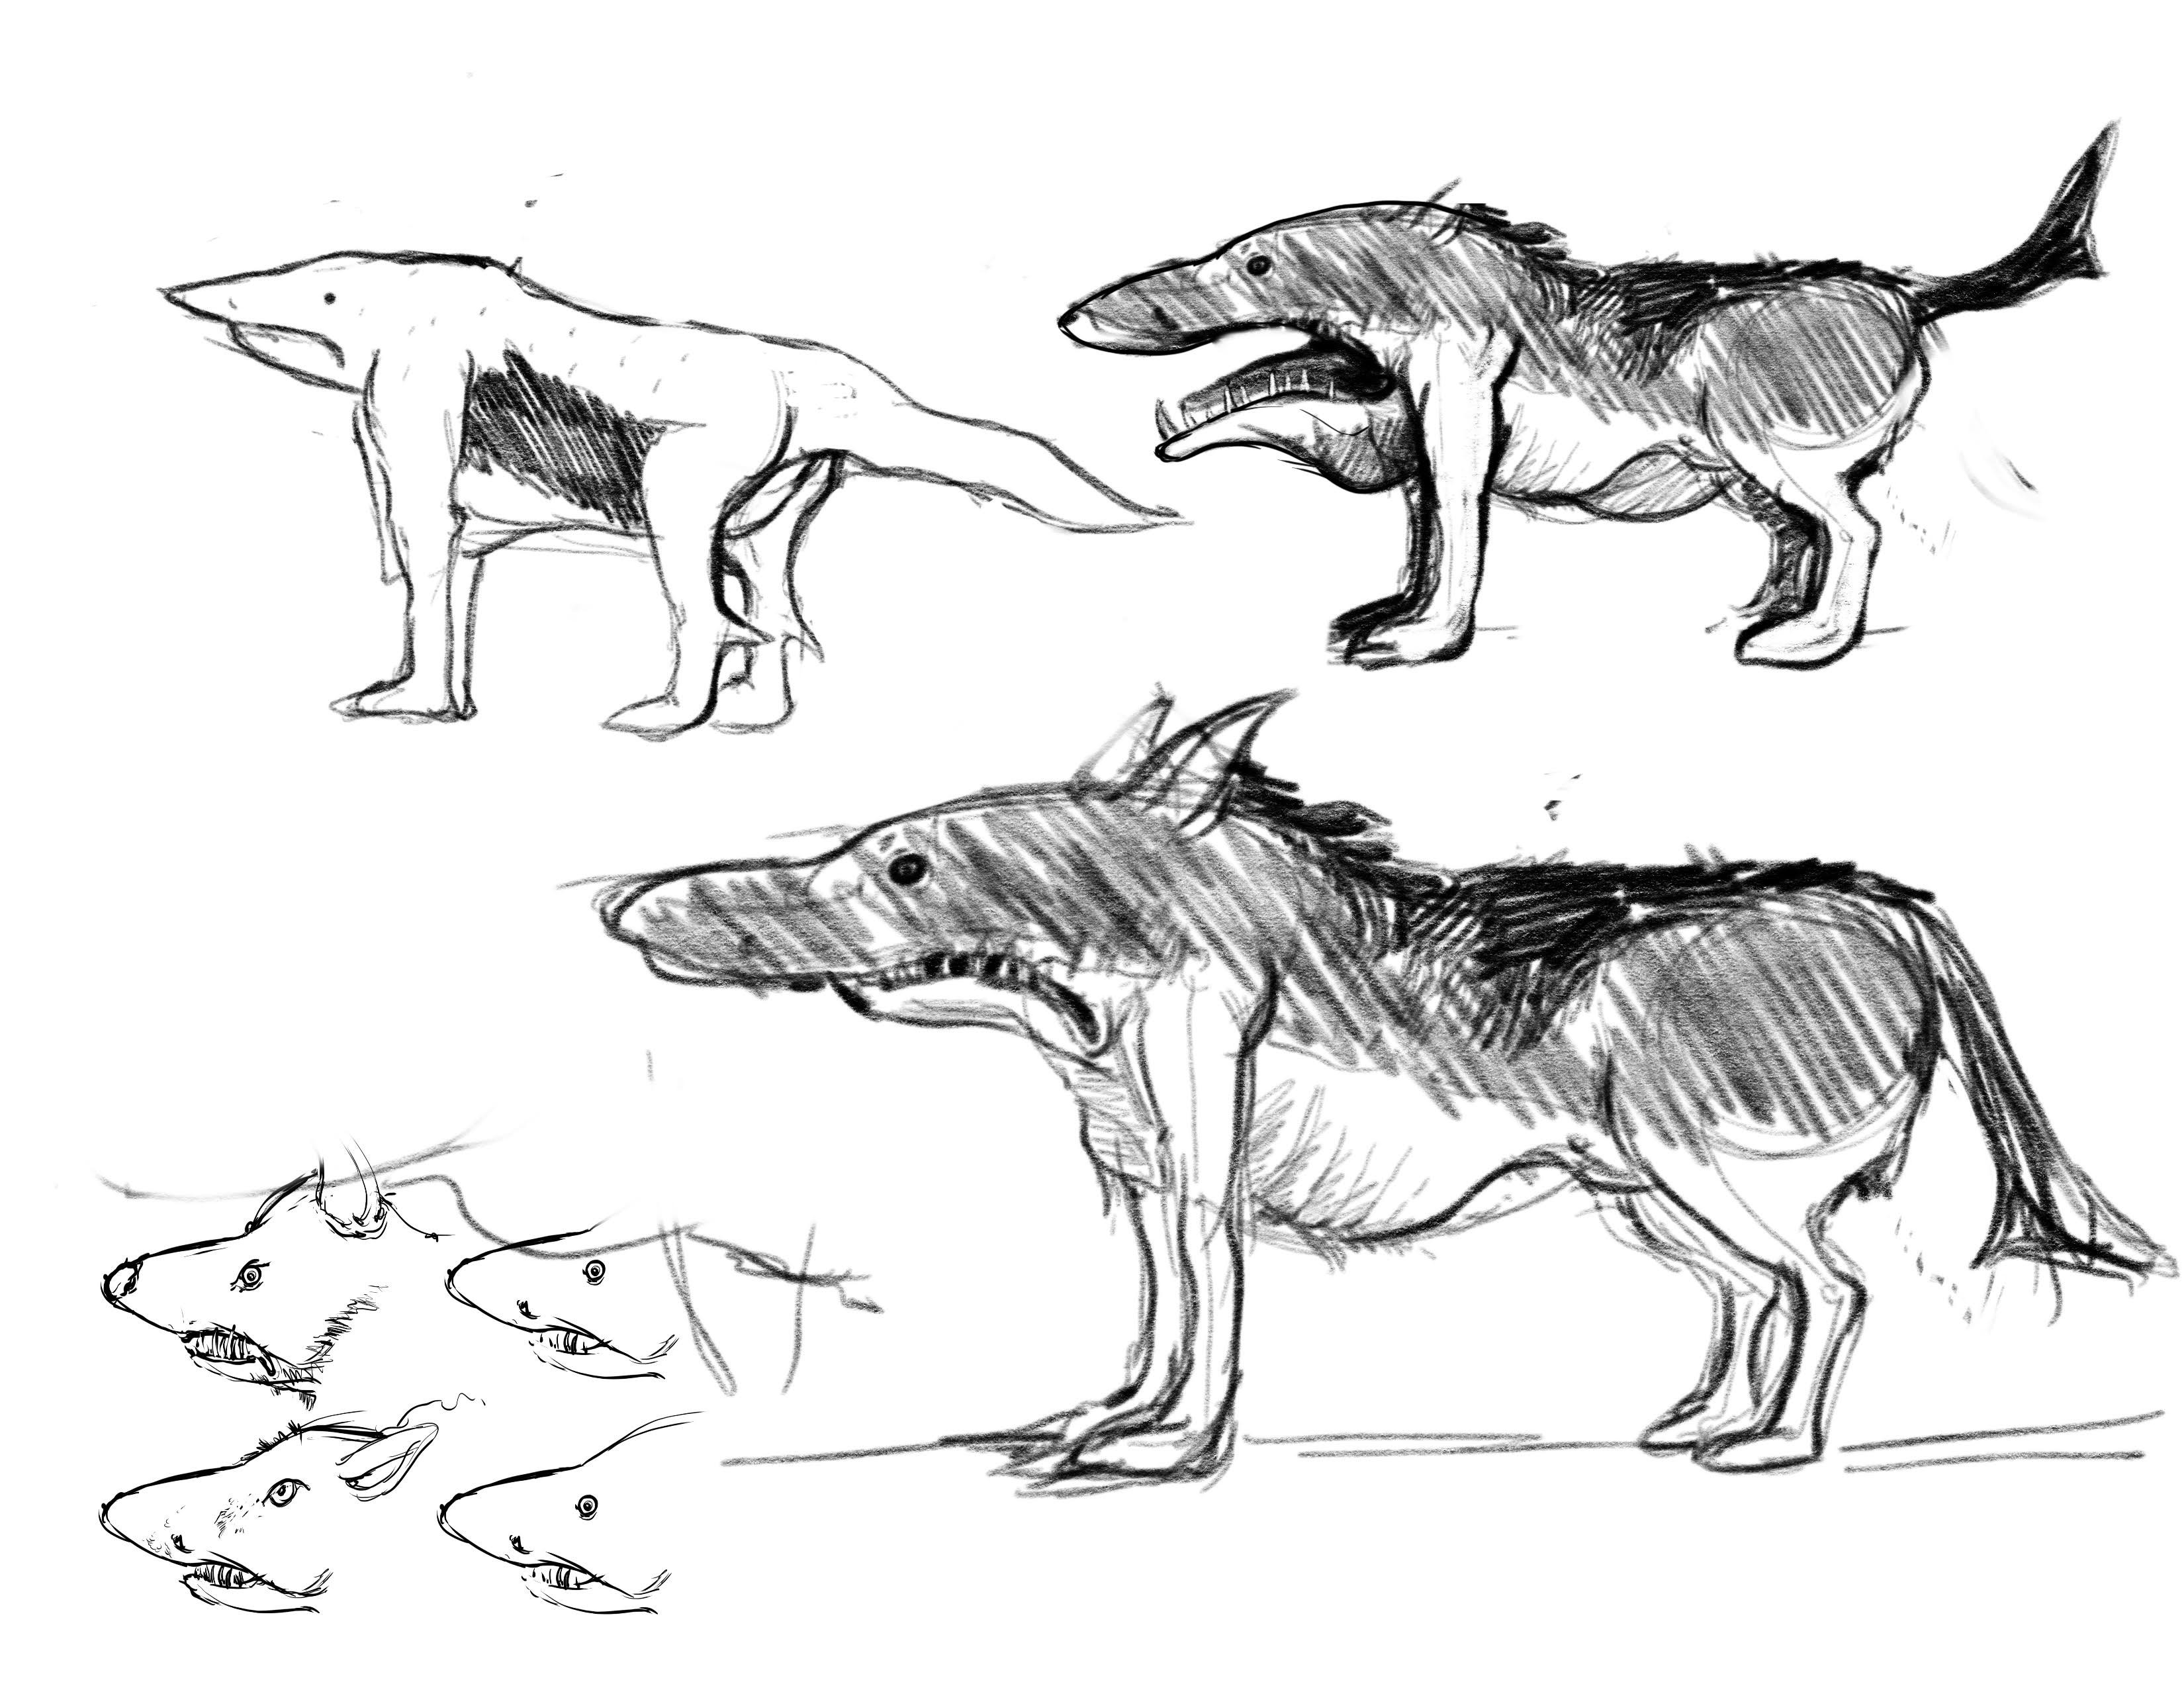 Concept ideation for the Shark Wolf creature character #2.